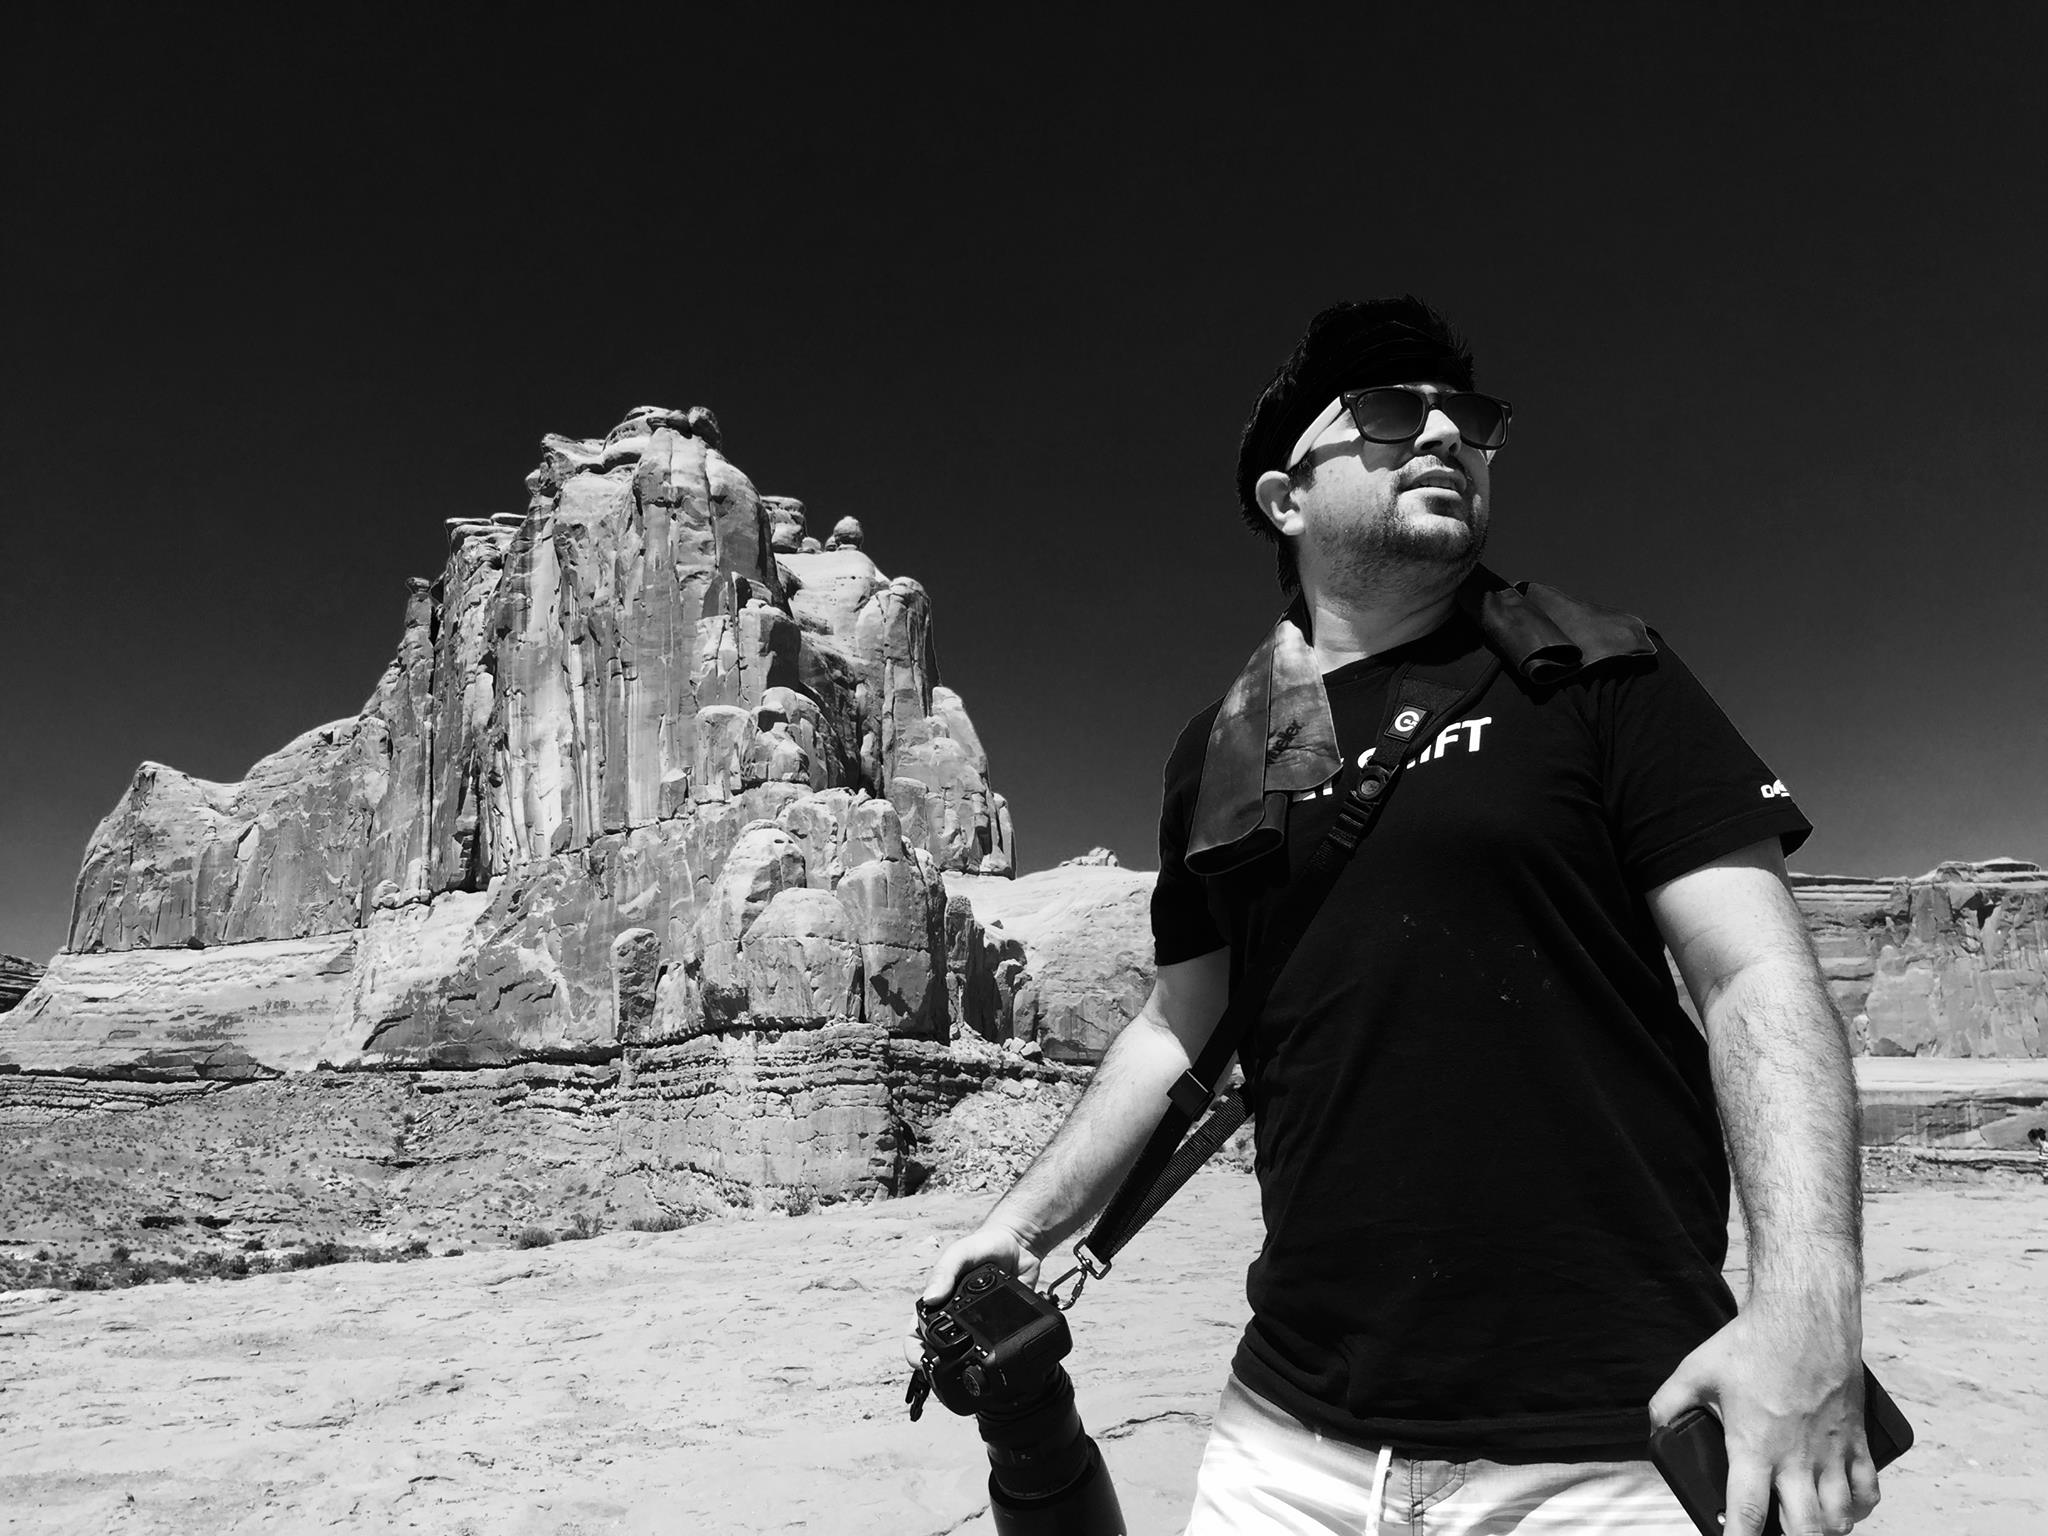 joey-leon-about-me-black-and-white-hiking.jpg